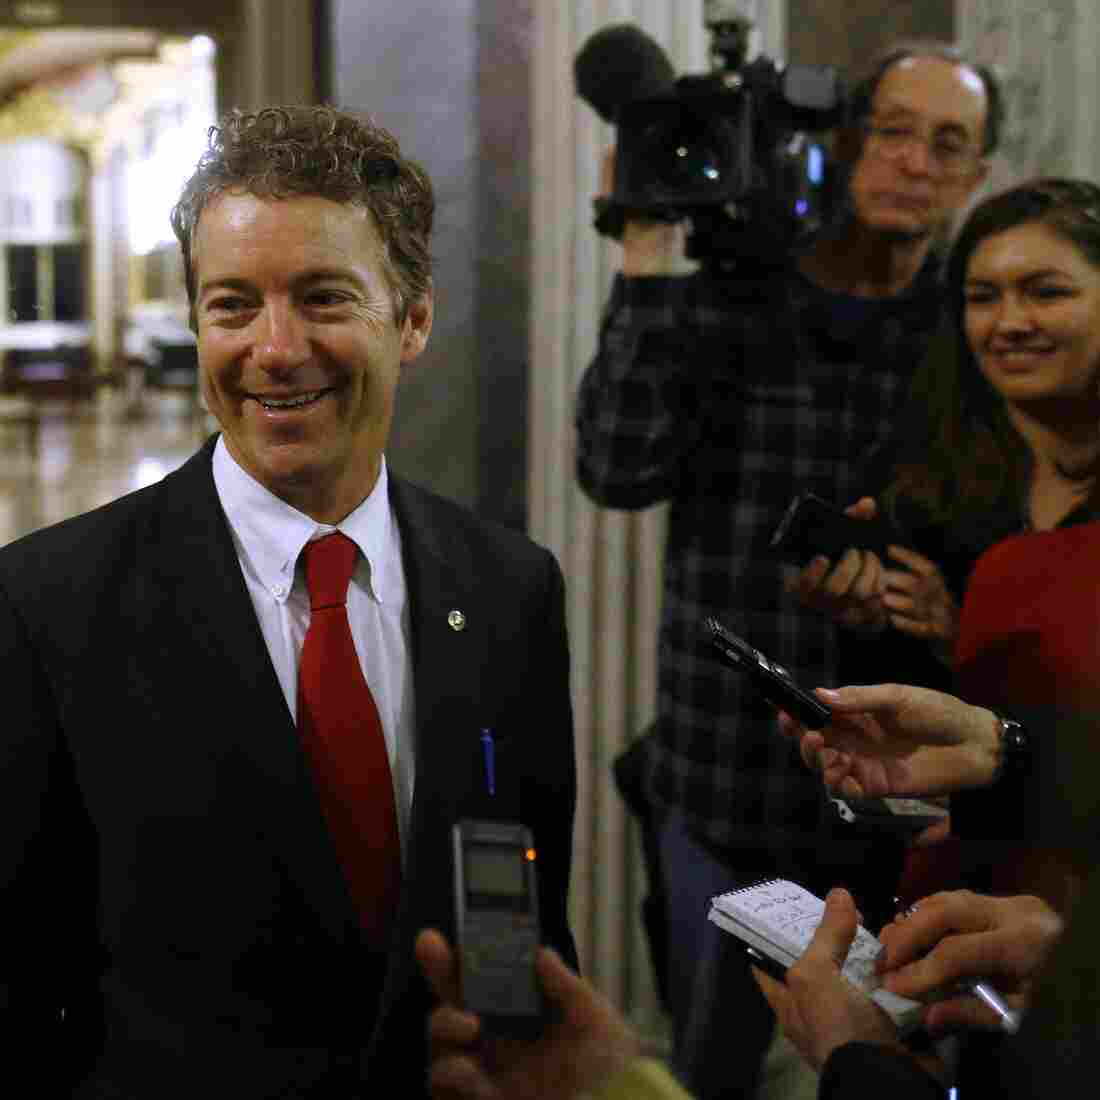 Kentucky Sen. Rand Paul leaves the floor of the Senate early Thursday following his filibuster of the nomination of John Brennan to be CIA director.